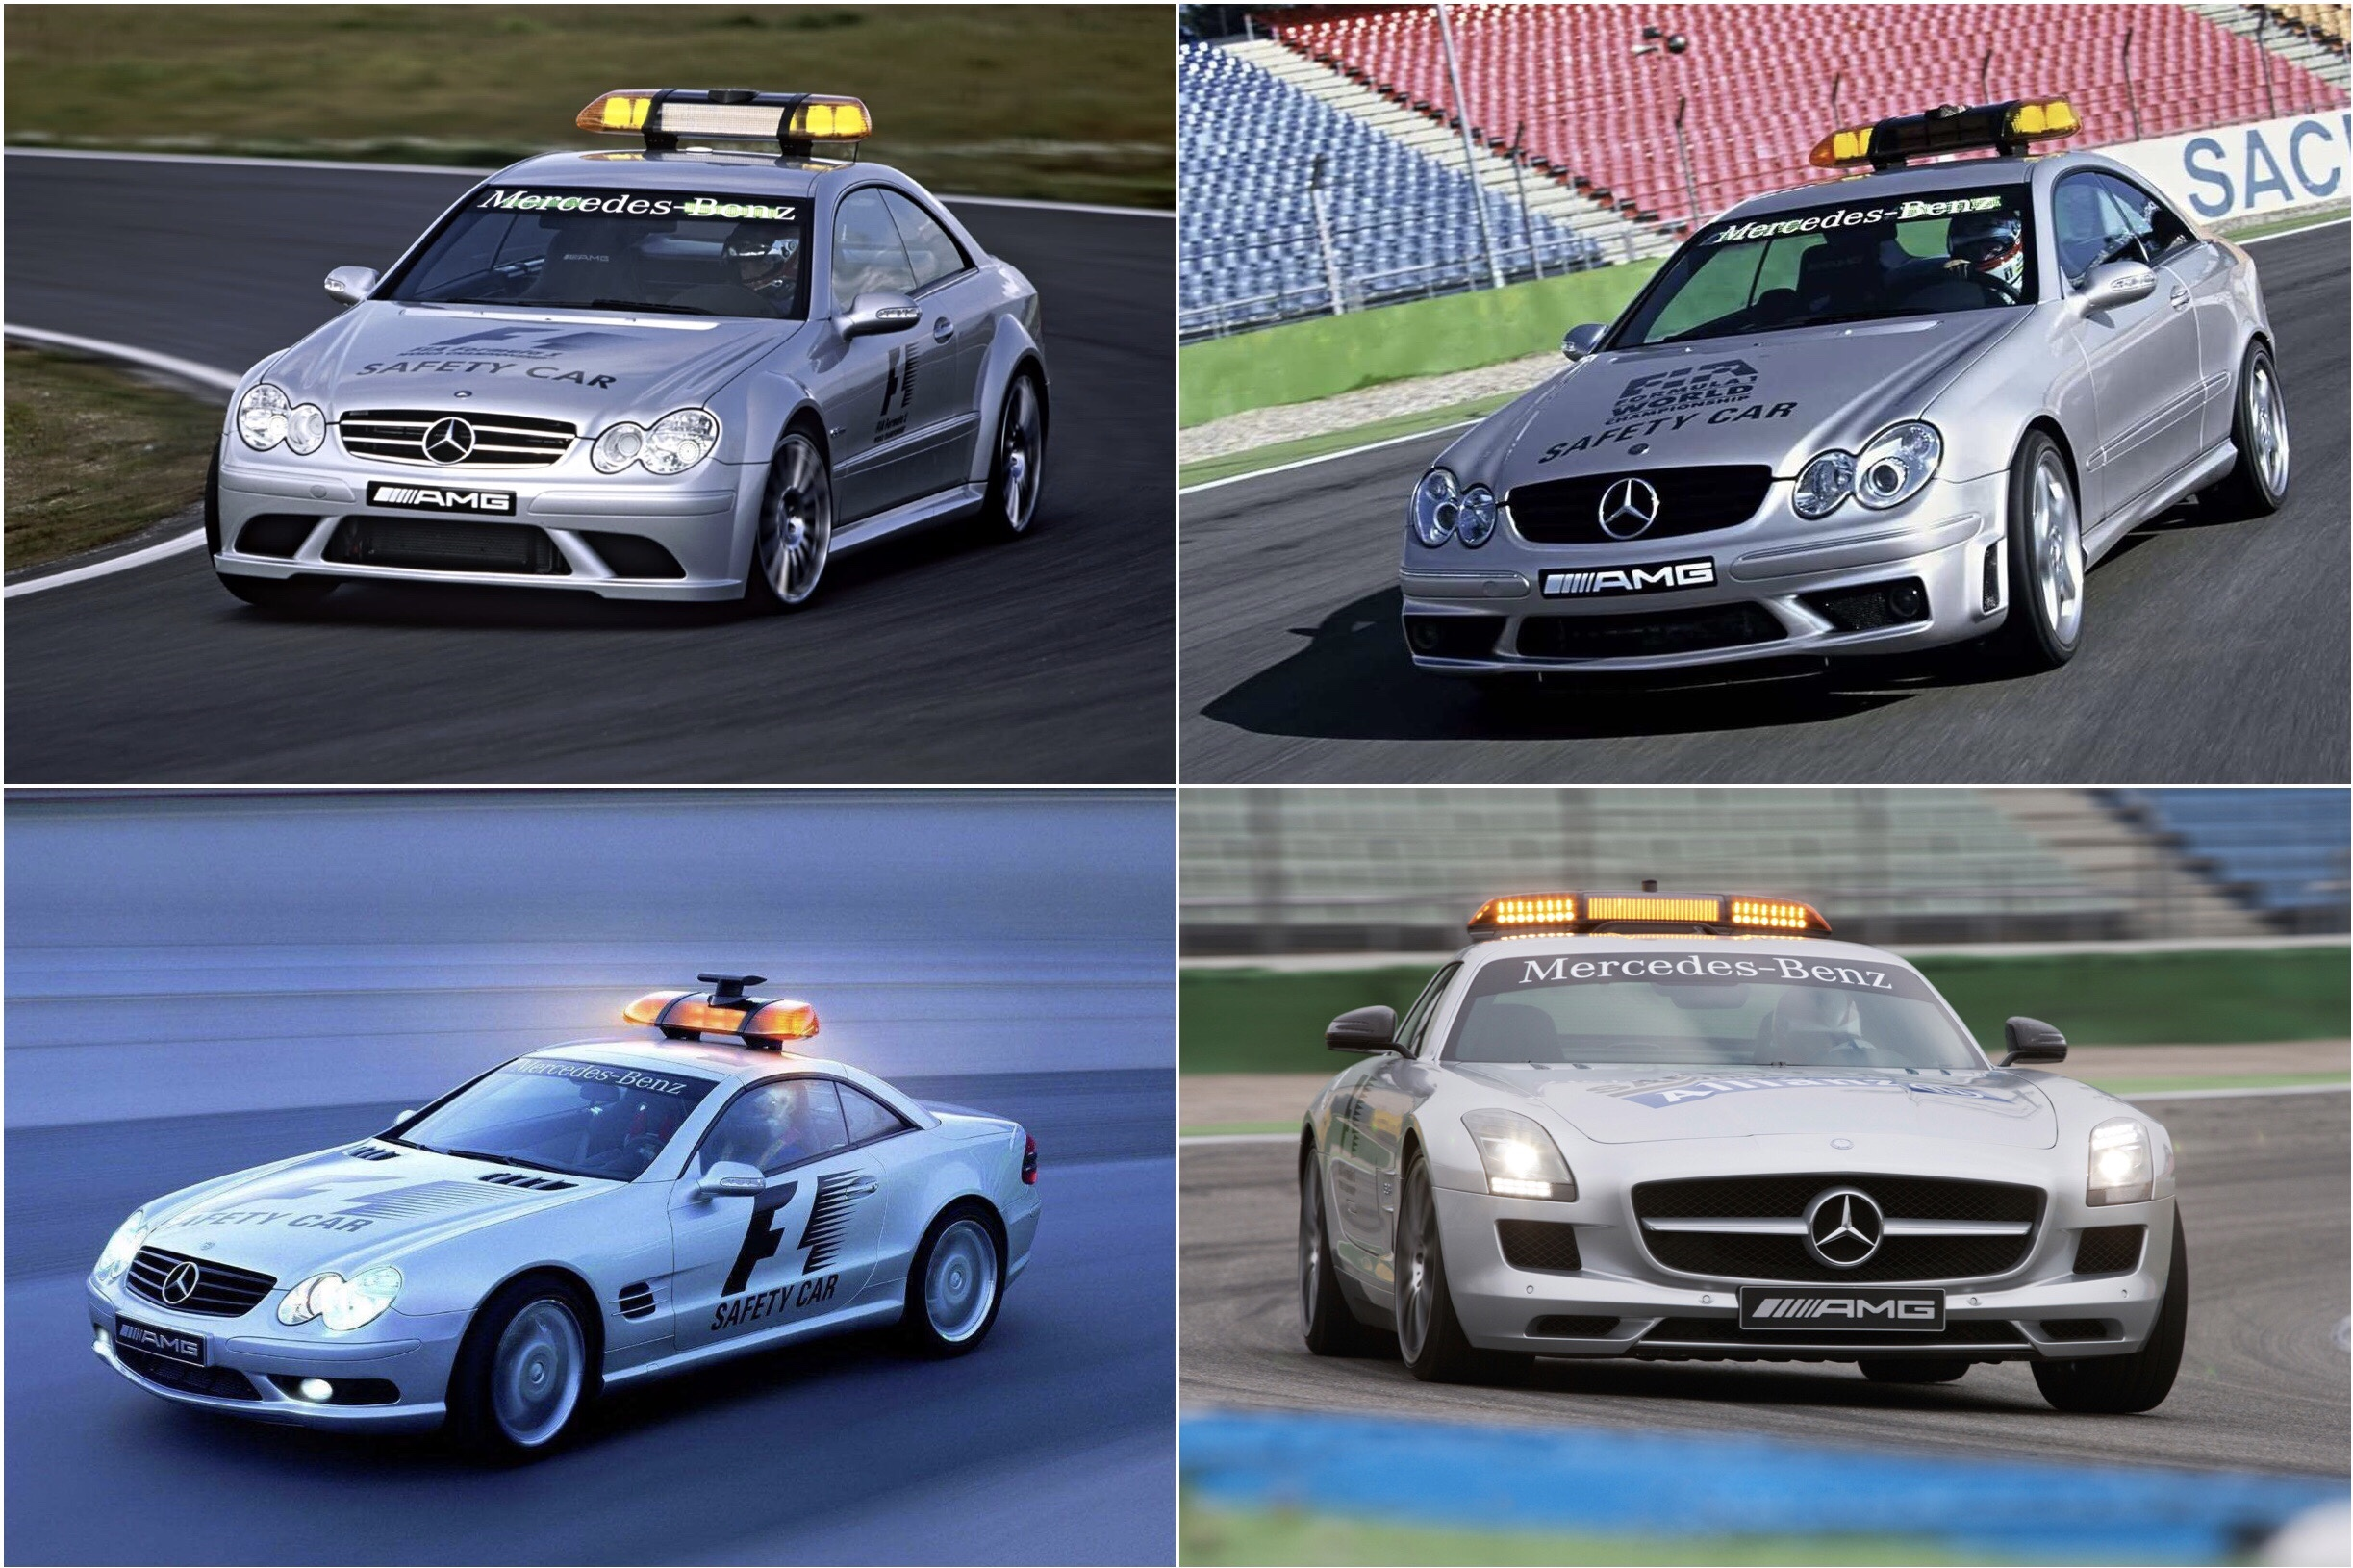 Mercedes-Benz's pace cars from past years.